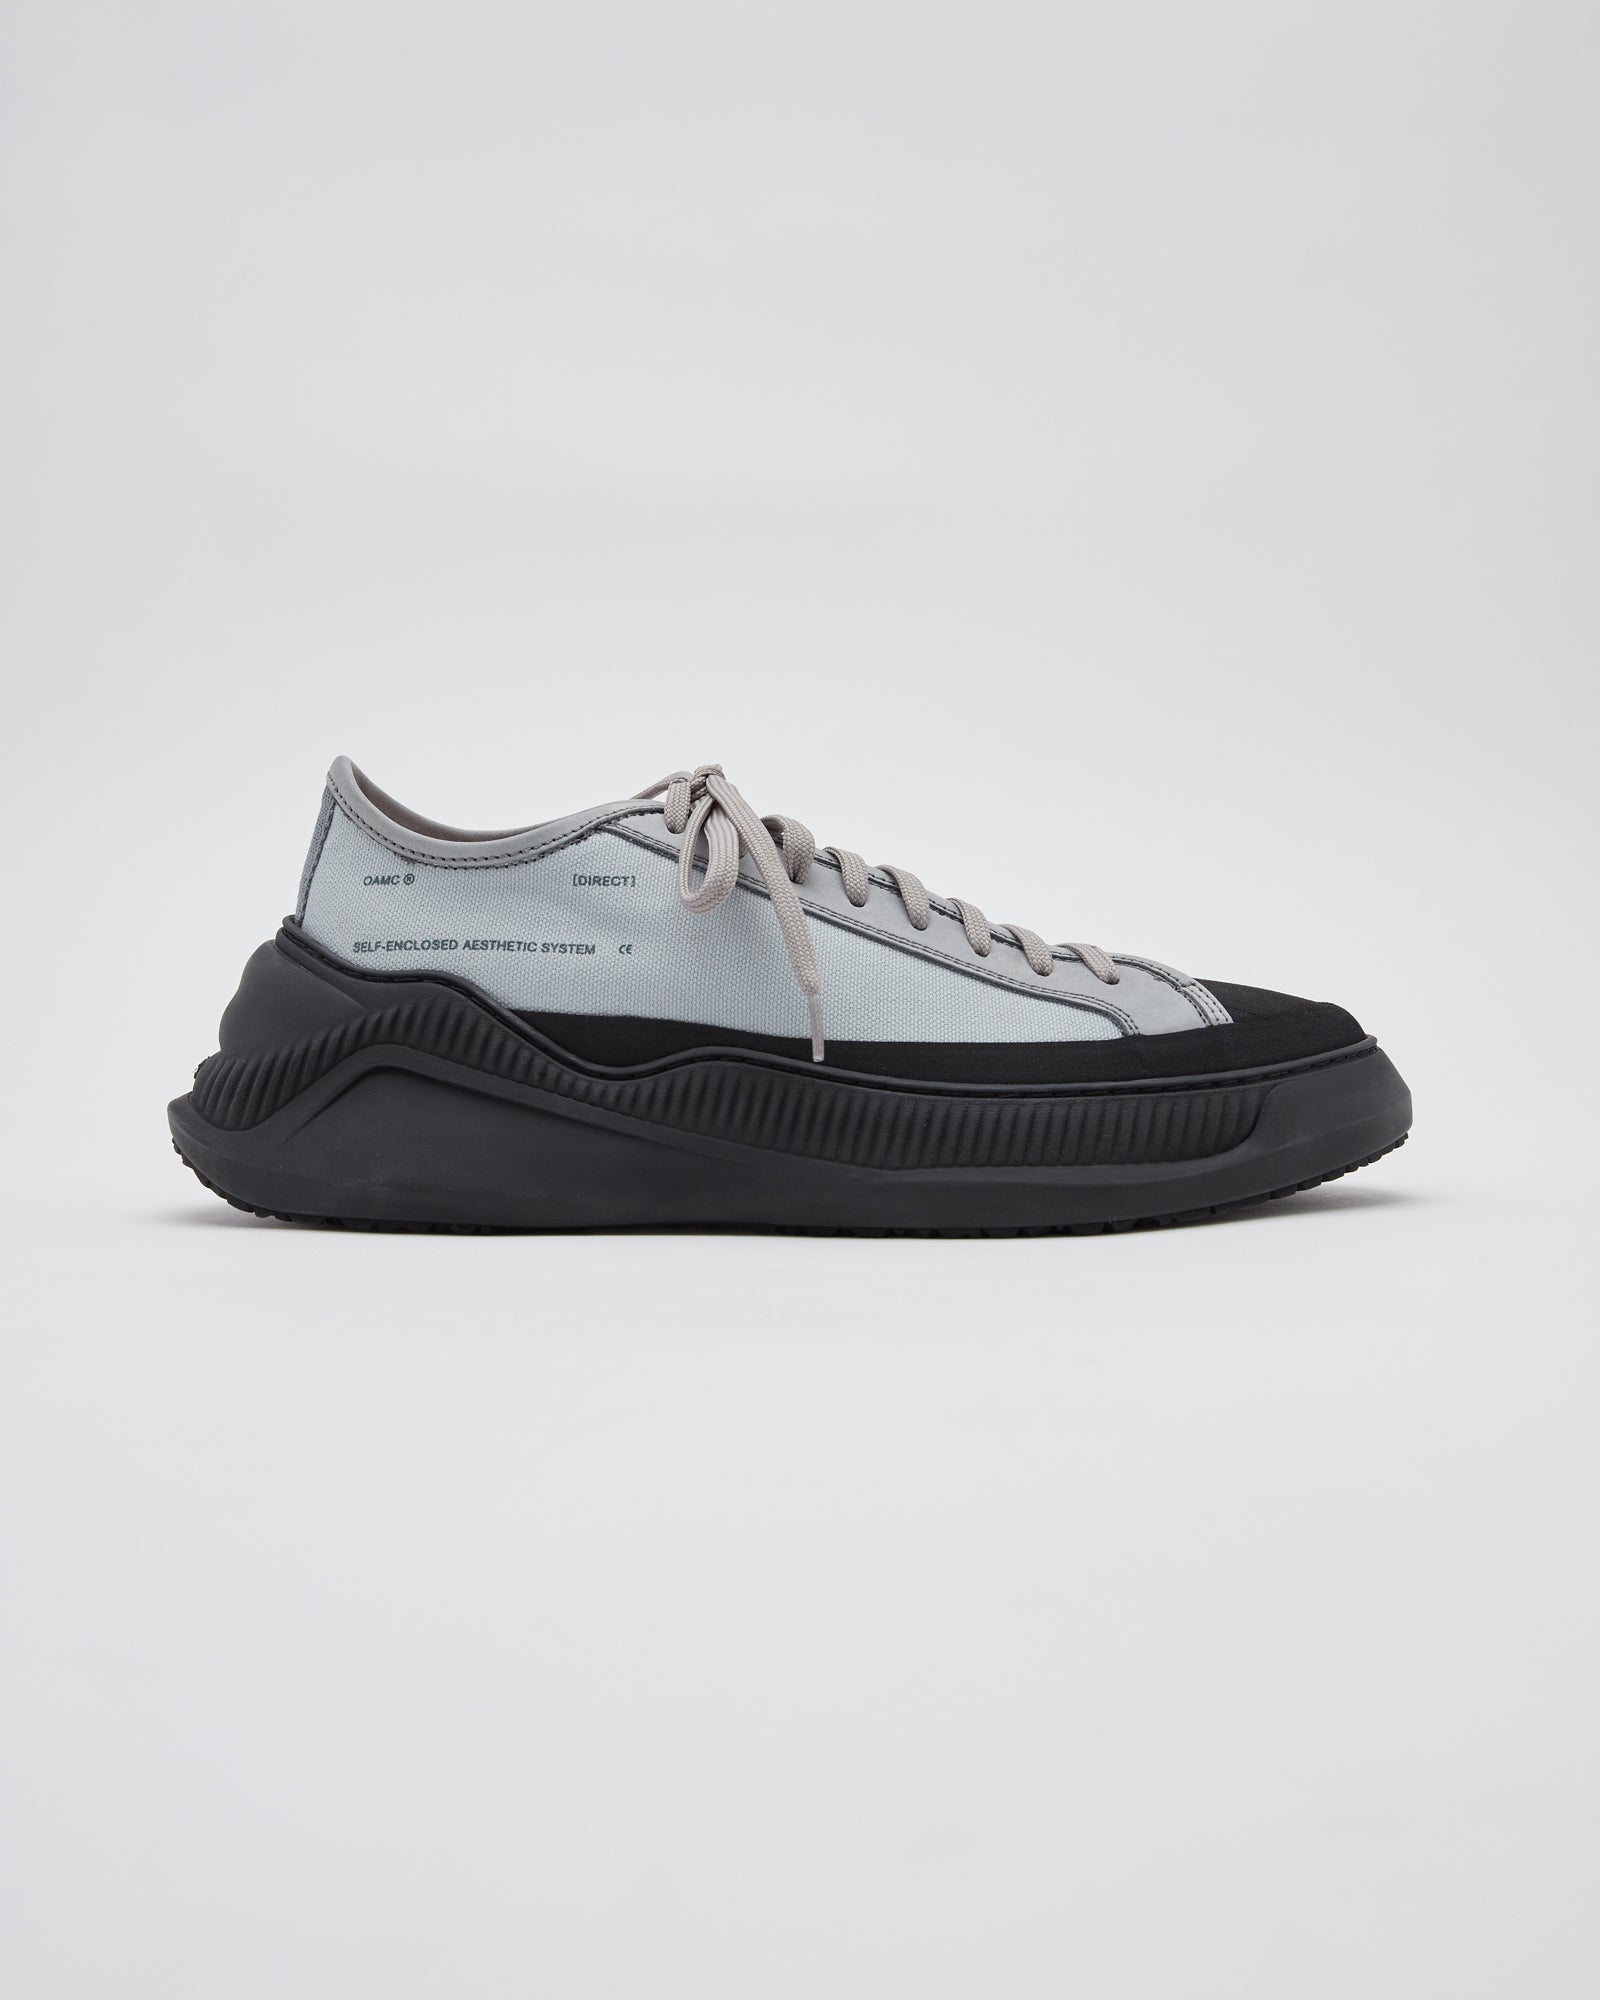 Free Solo Low Sneaker in Mist